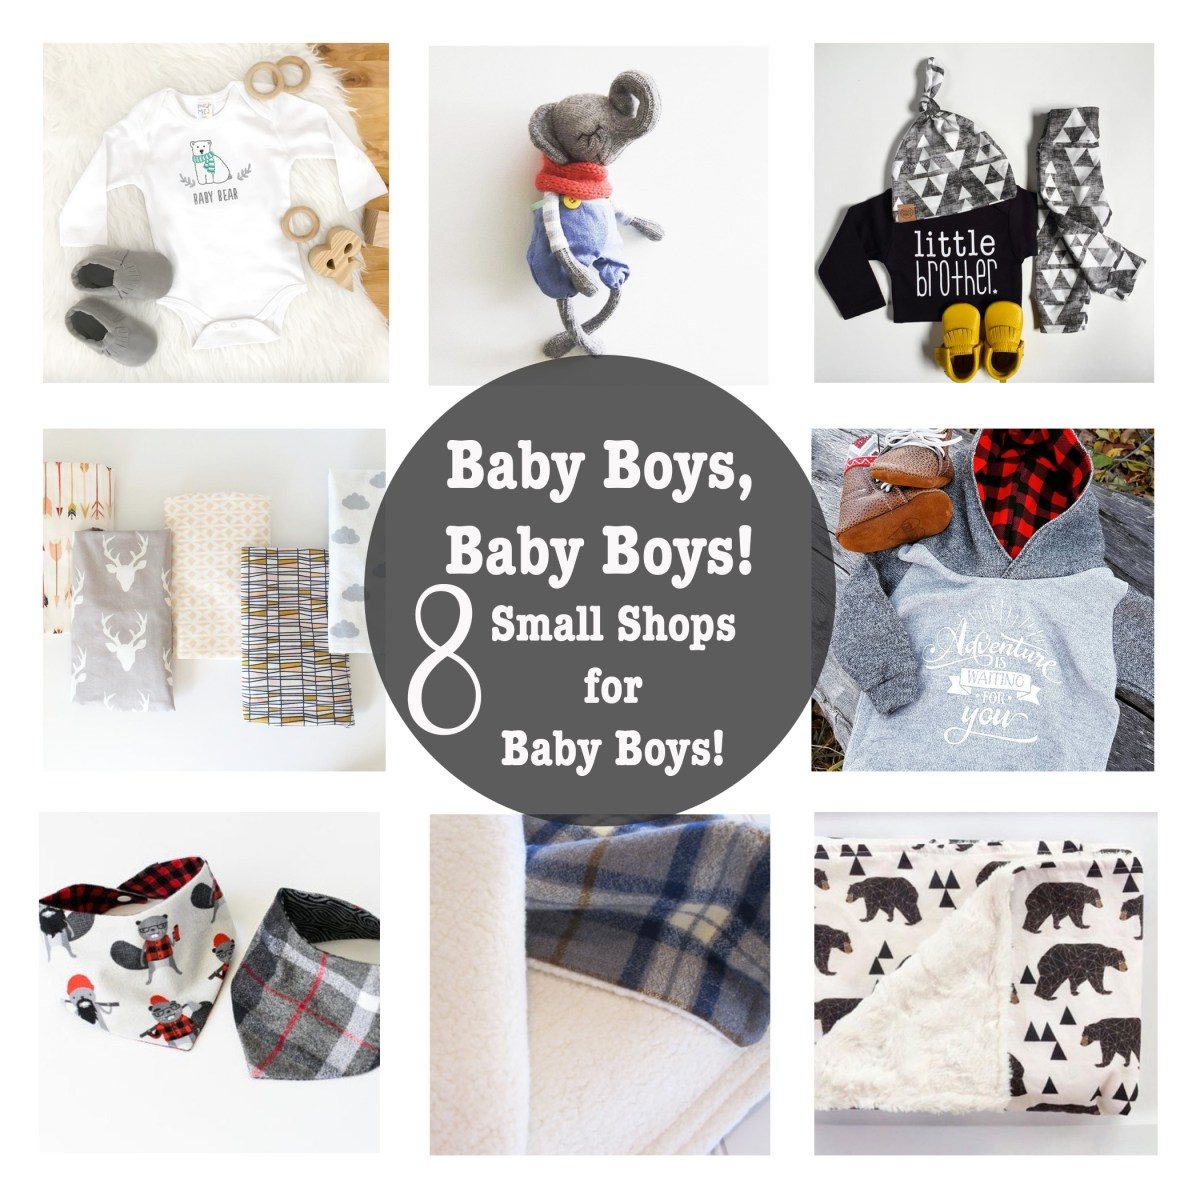 Baby Boys and Eight Amazing Small Shops